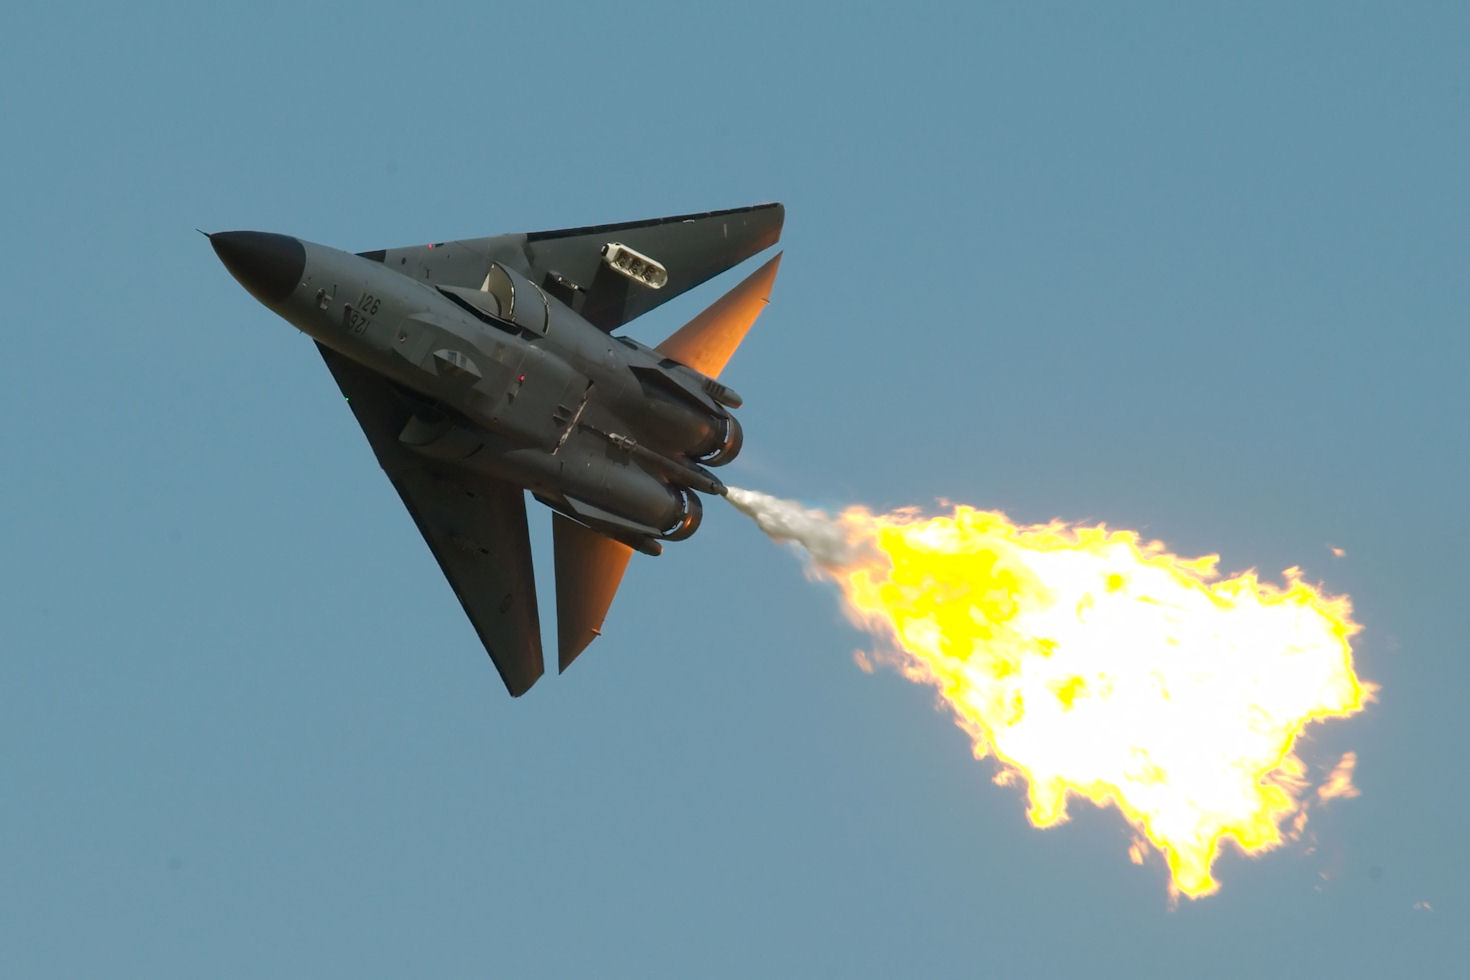 F-111 Aardvark - This Aint News